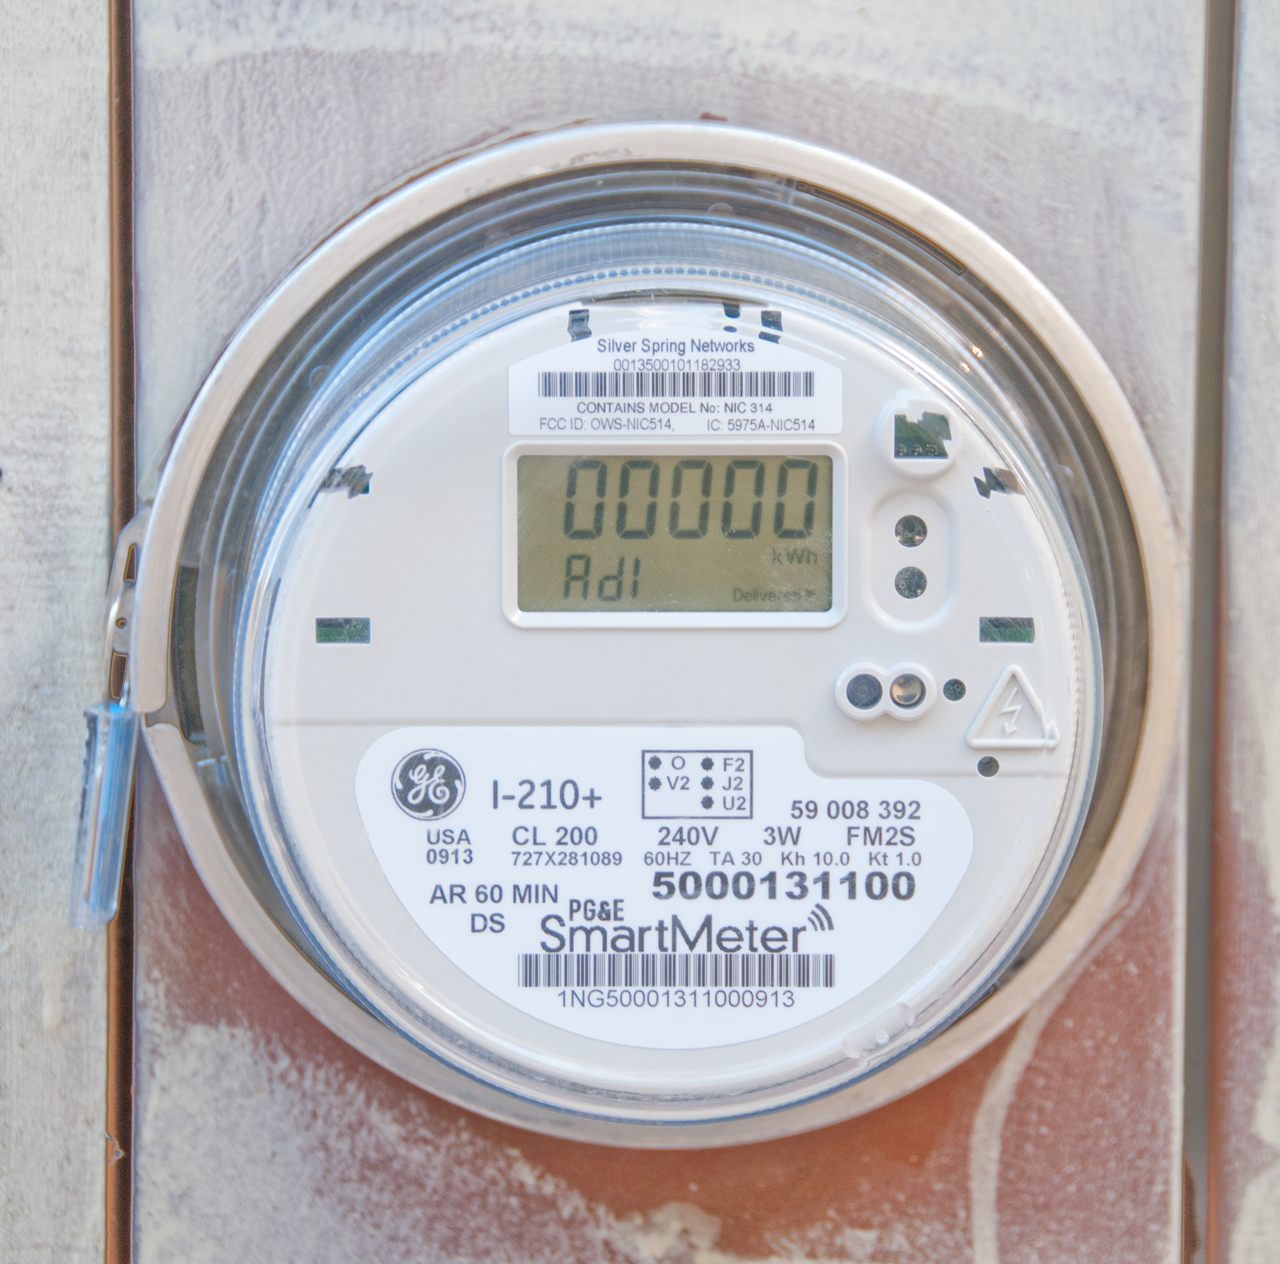 SmartEmeter03b smart utility meters ge kilowatt hour meter wiring diagram at readyjetset.co